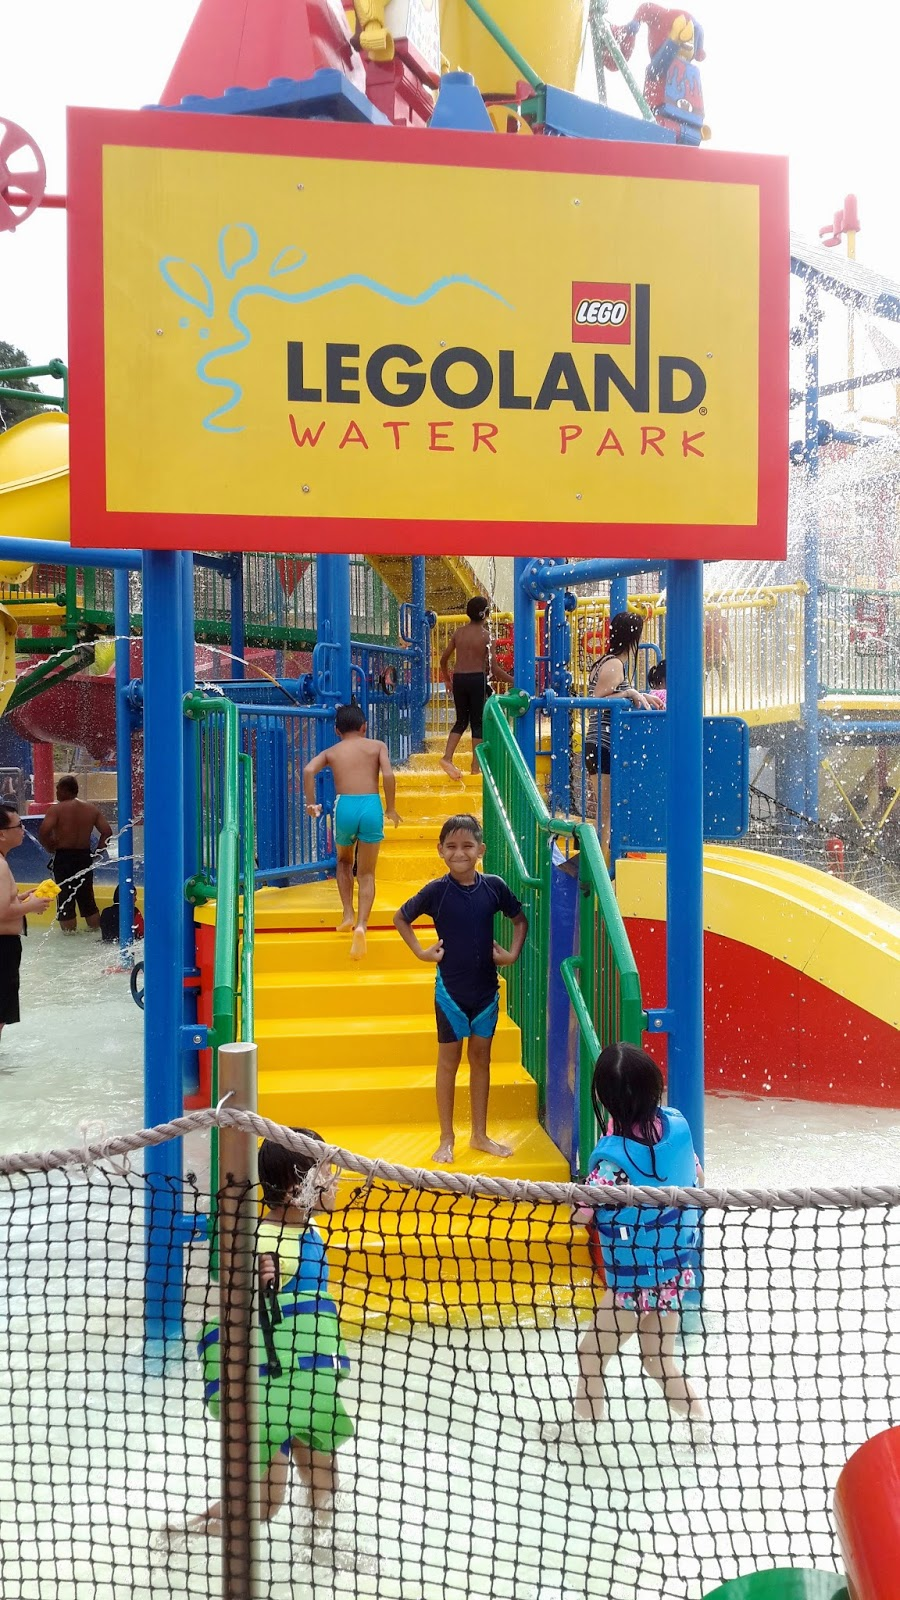 Our Trip To Legoland Malaysia Waterpark The Chill Mom Tiket Johor Bahru Theme Park Dan Water Meanwhile My 7 Years Old Nephew Rohan And 9 Niece Mithraa Were Having A Blast At Joker Soaker It Is Basically Massive Playground For